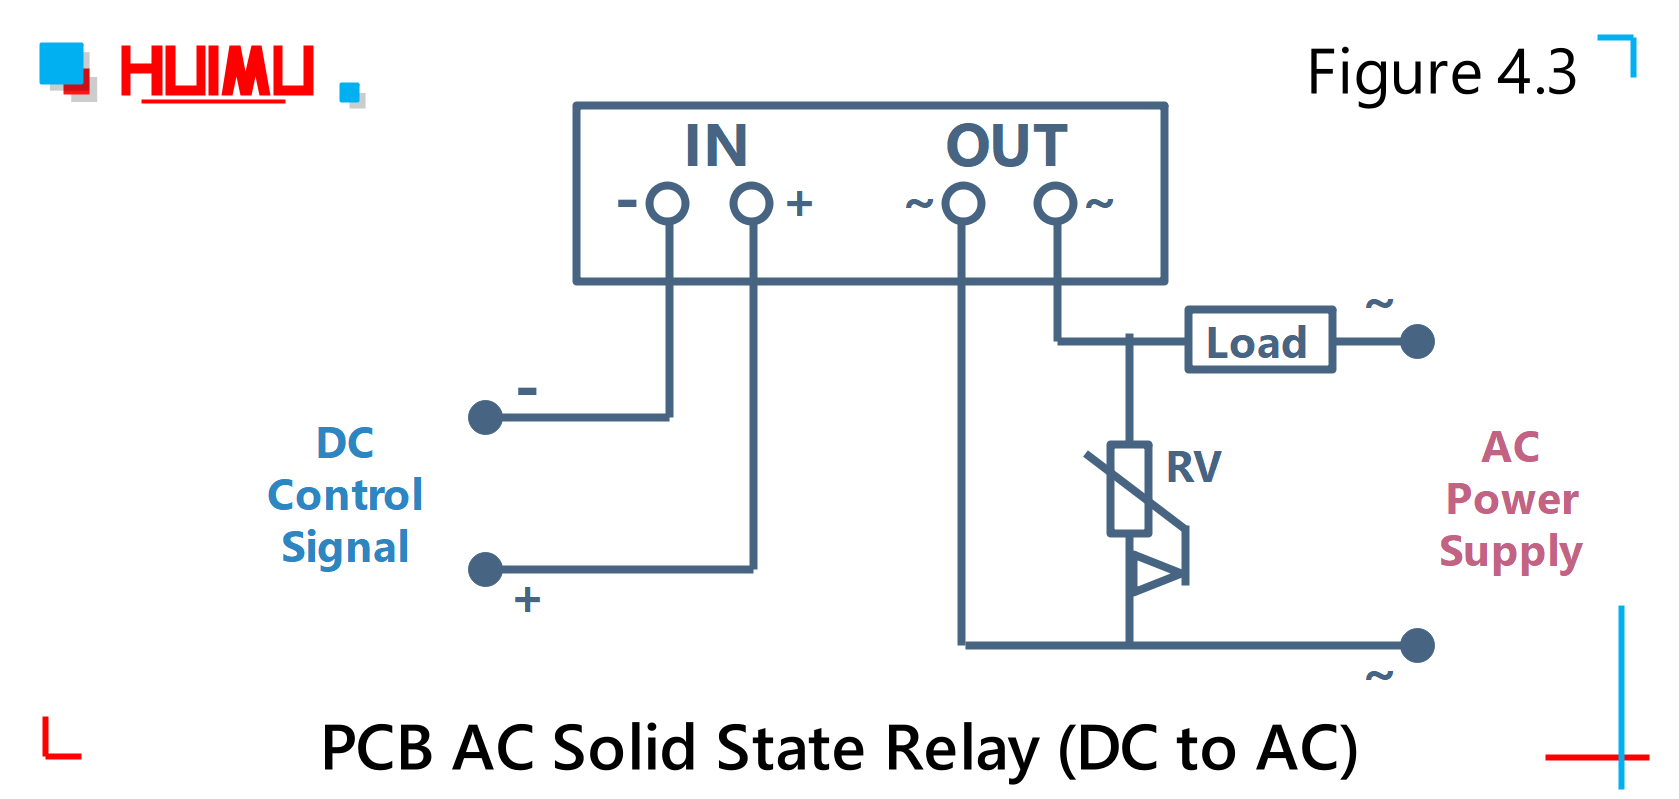 Solid state relays circuit wiring diagram -MGR mager SSR |HUIMULTD on